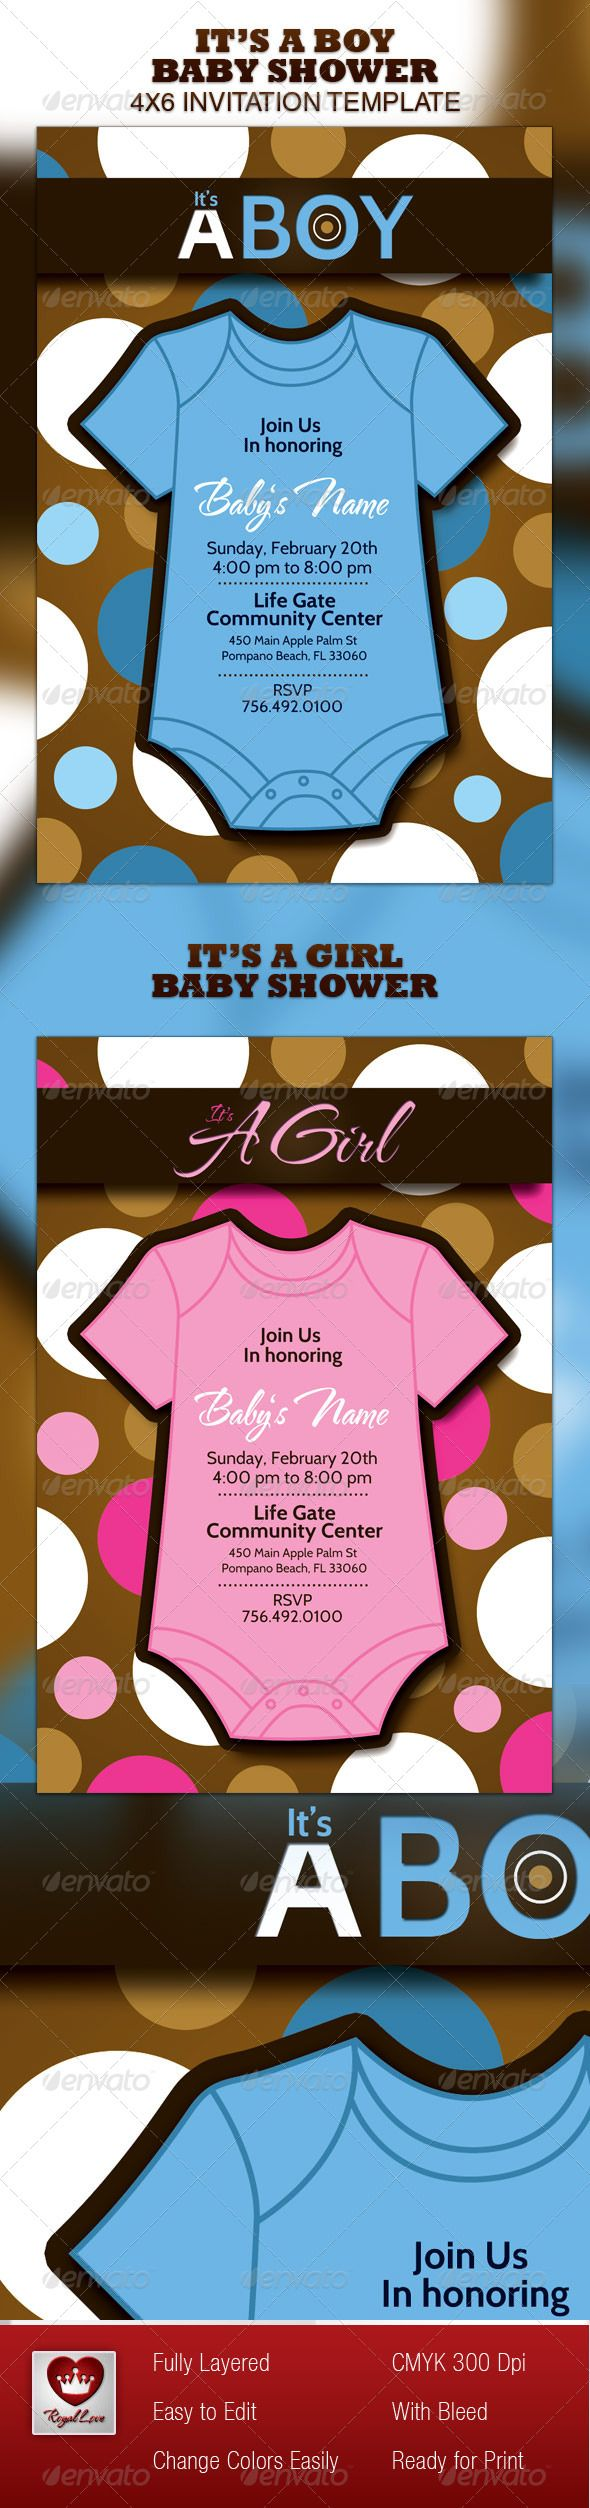 Boy U0026 Girl Baby Shower Invitation Template